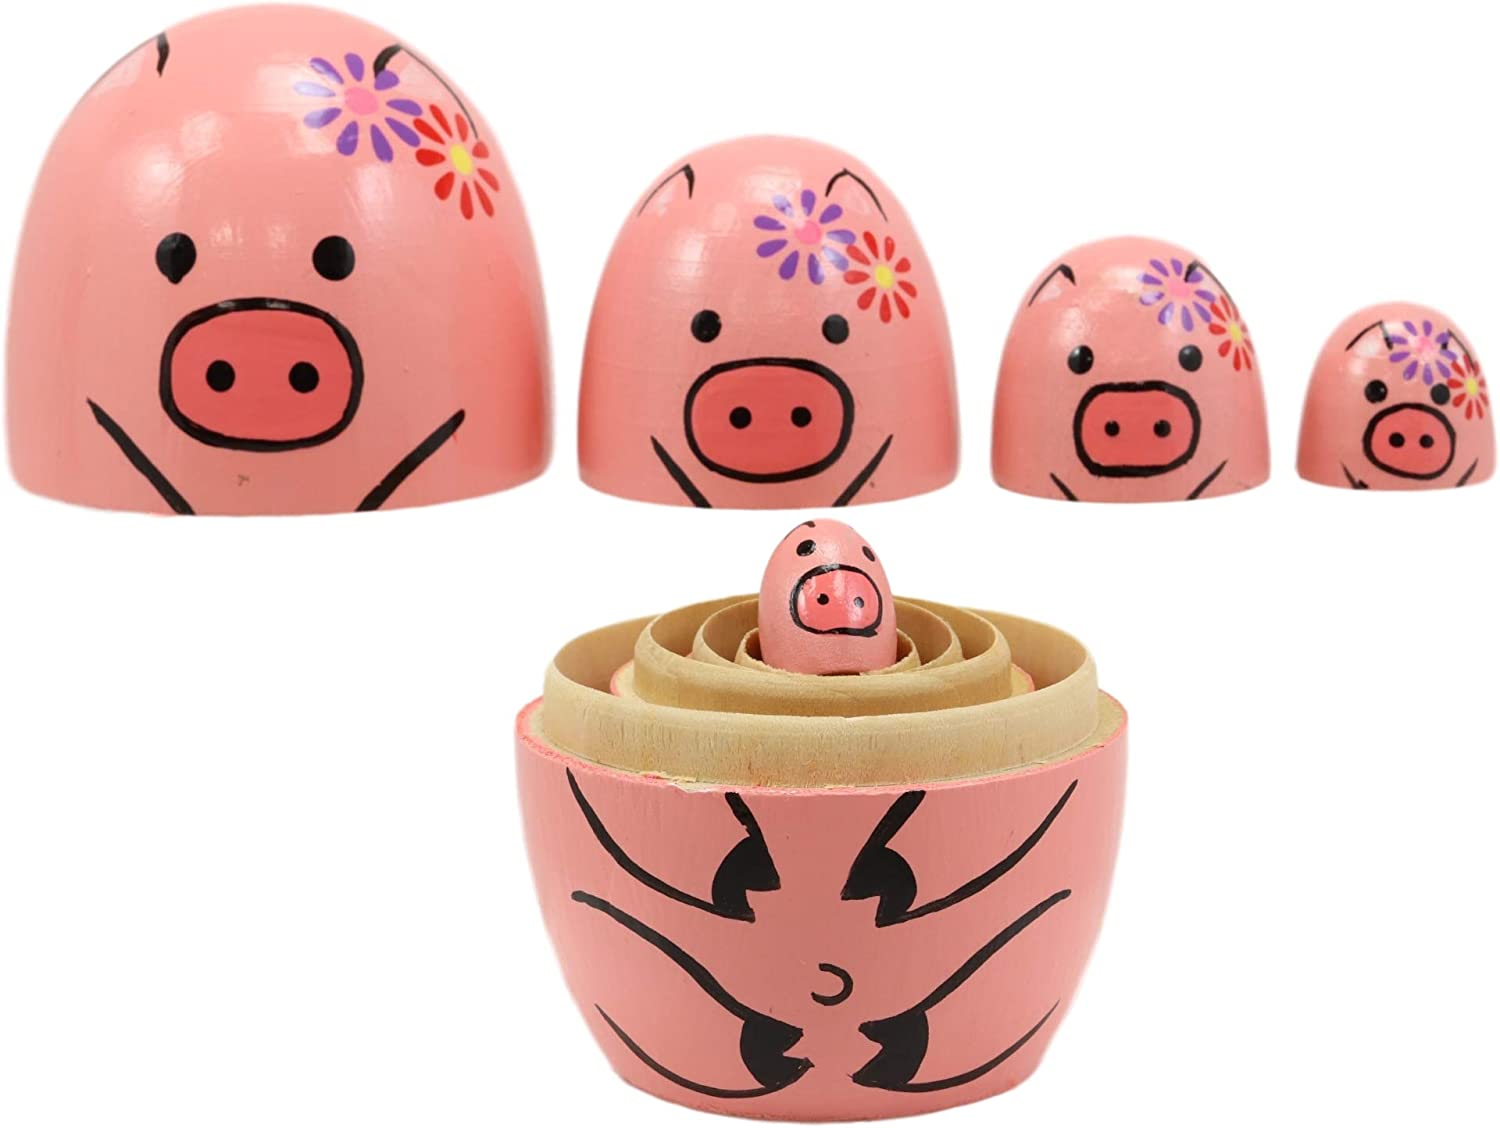 Ebros Gift Pink Porky Babe Pig Wooden Toy Stacking Nesting Dolls 5 Piece Set Hand Painted Wood Decorative Collectible Matryoshka Doll Toys for Children Christmas Mothers Day Birthday Gifts